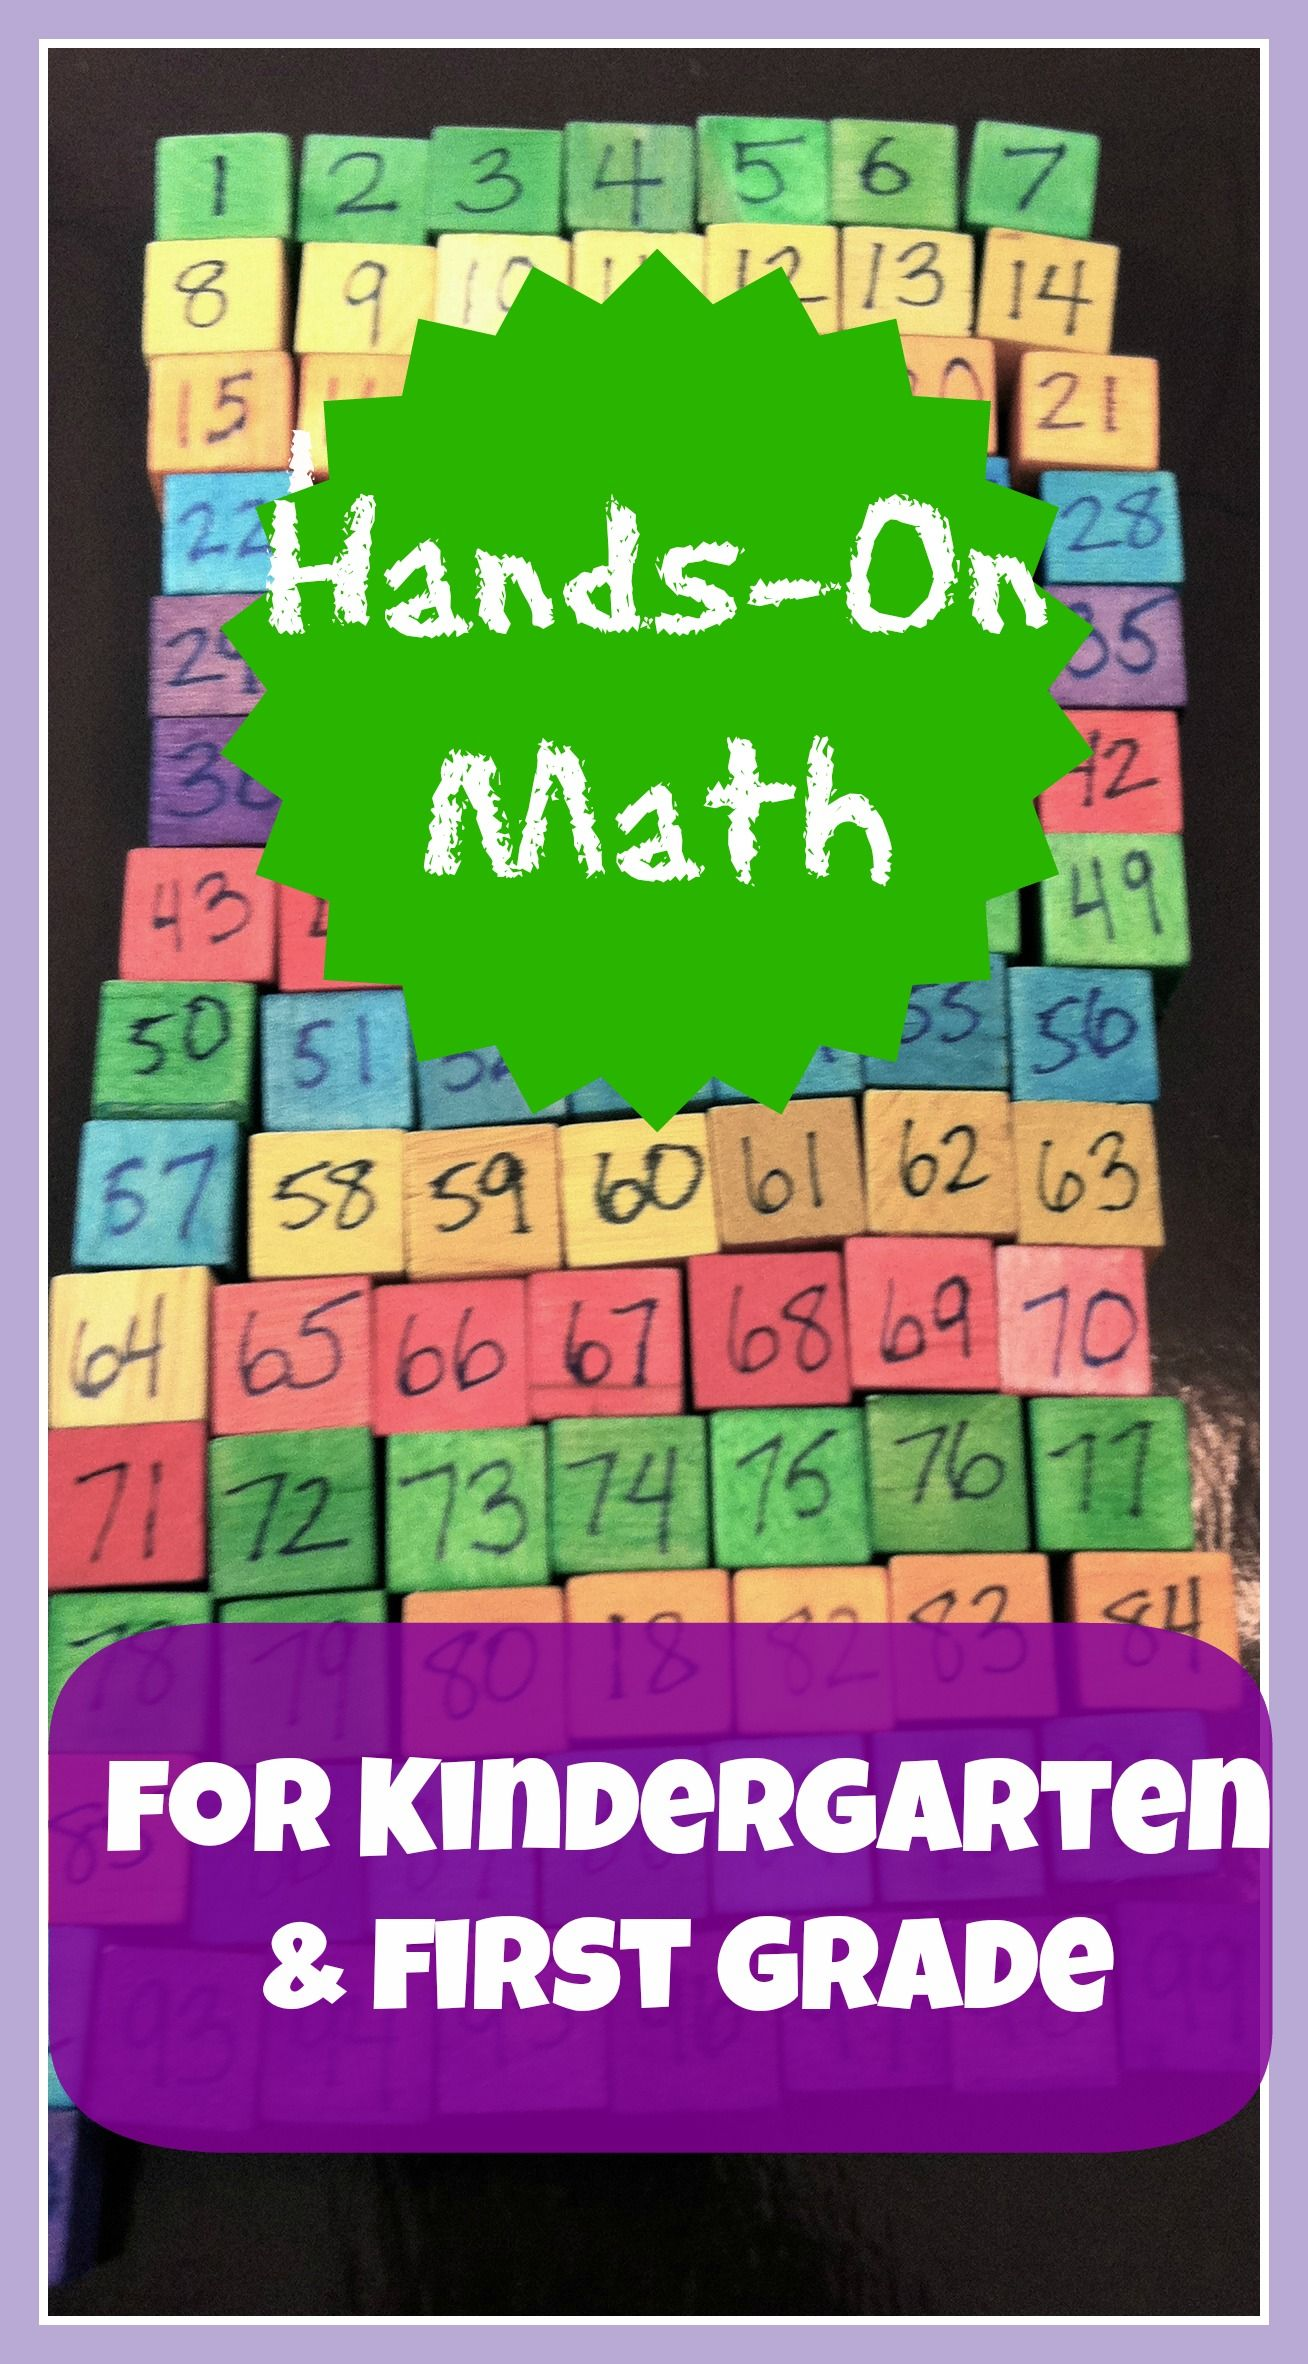 Hands-on Math Learning For Kindergarten And First Grade | School